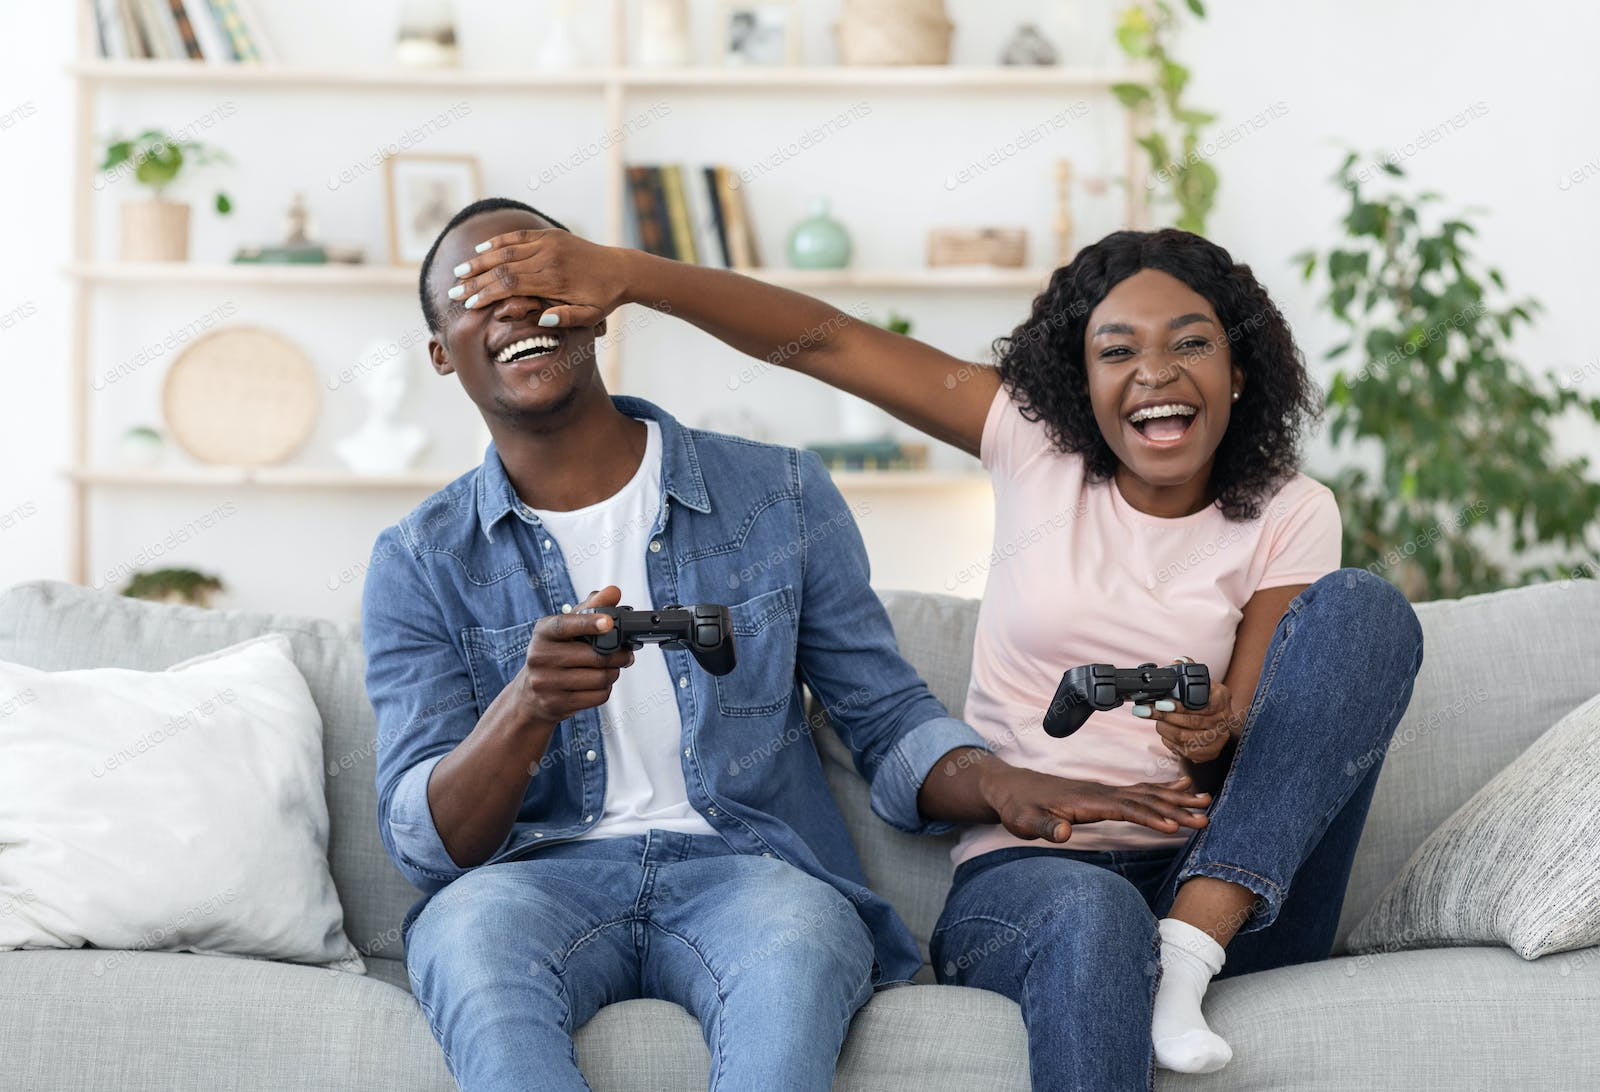 Happy black couple playing video game, woman covering boyfriend eyes photo  by Prostock-studio on Envato Elements